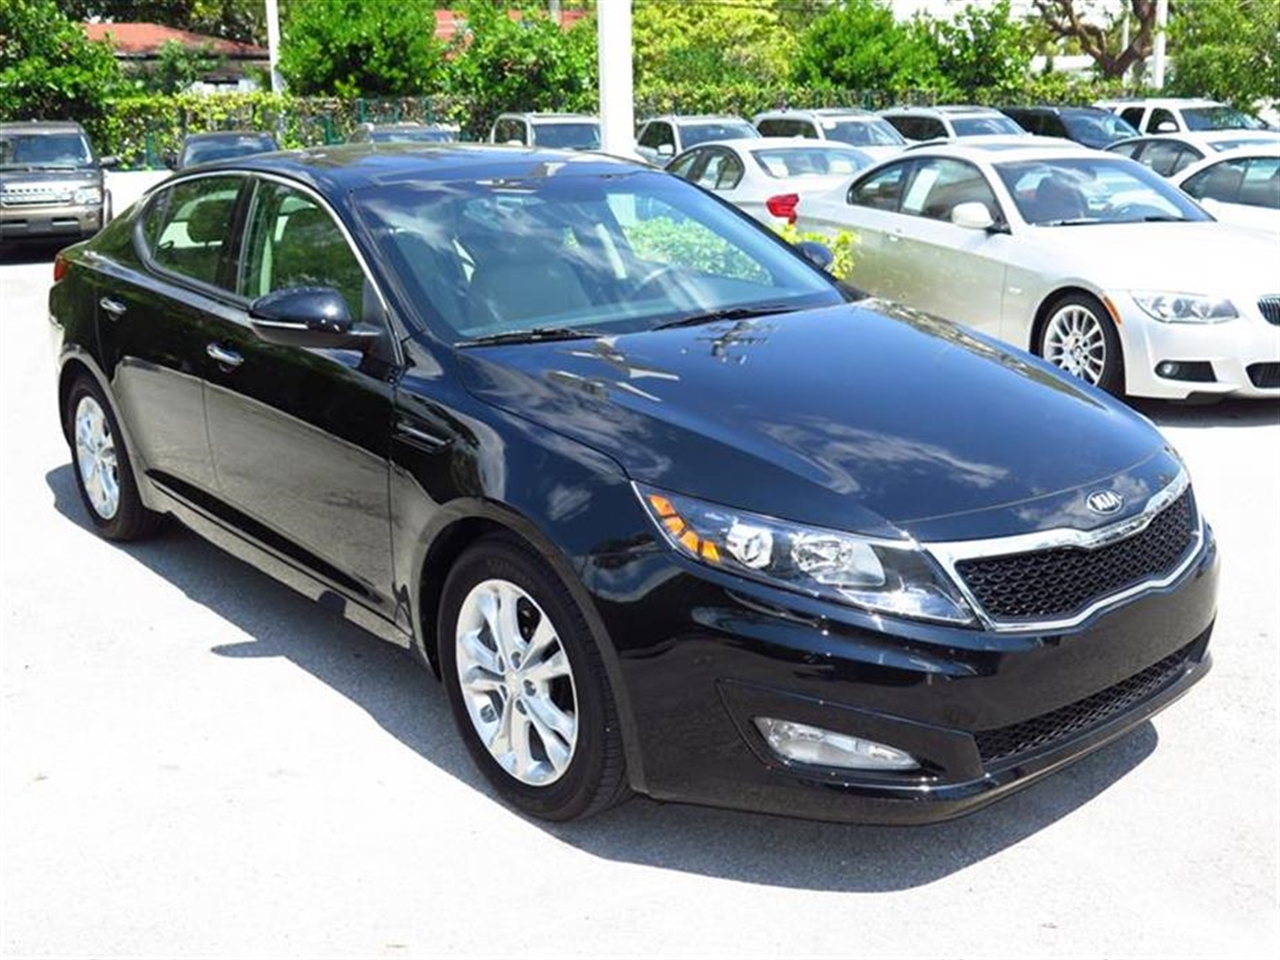 2013 KIA OPTIMA EX 4dr Sdn EX 3560 miles 2 aux pwr outlets 6040 split-folding rear bench seat